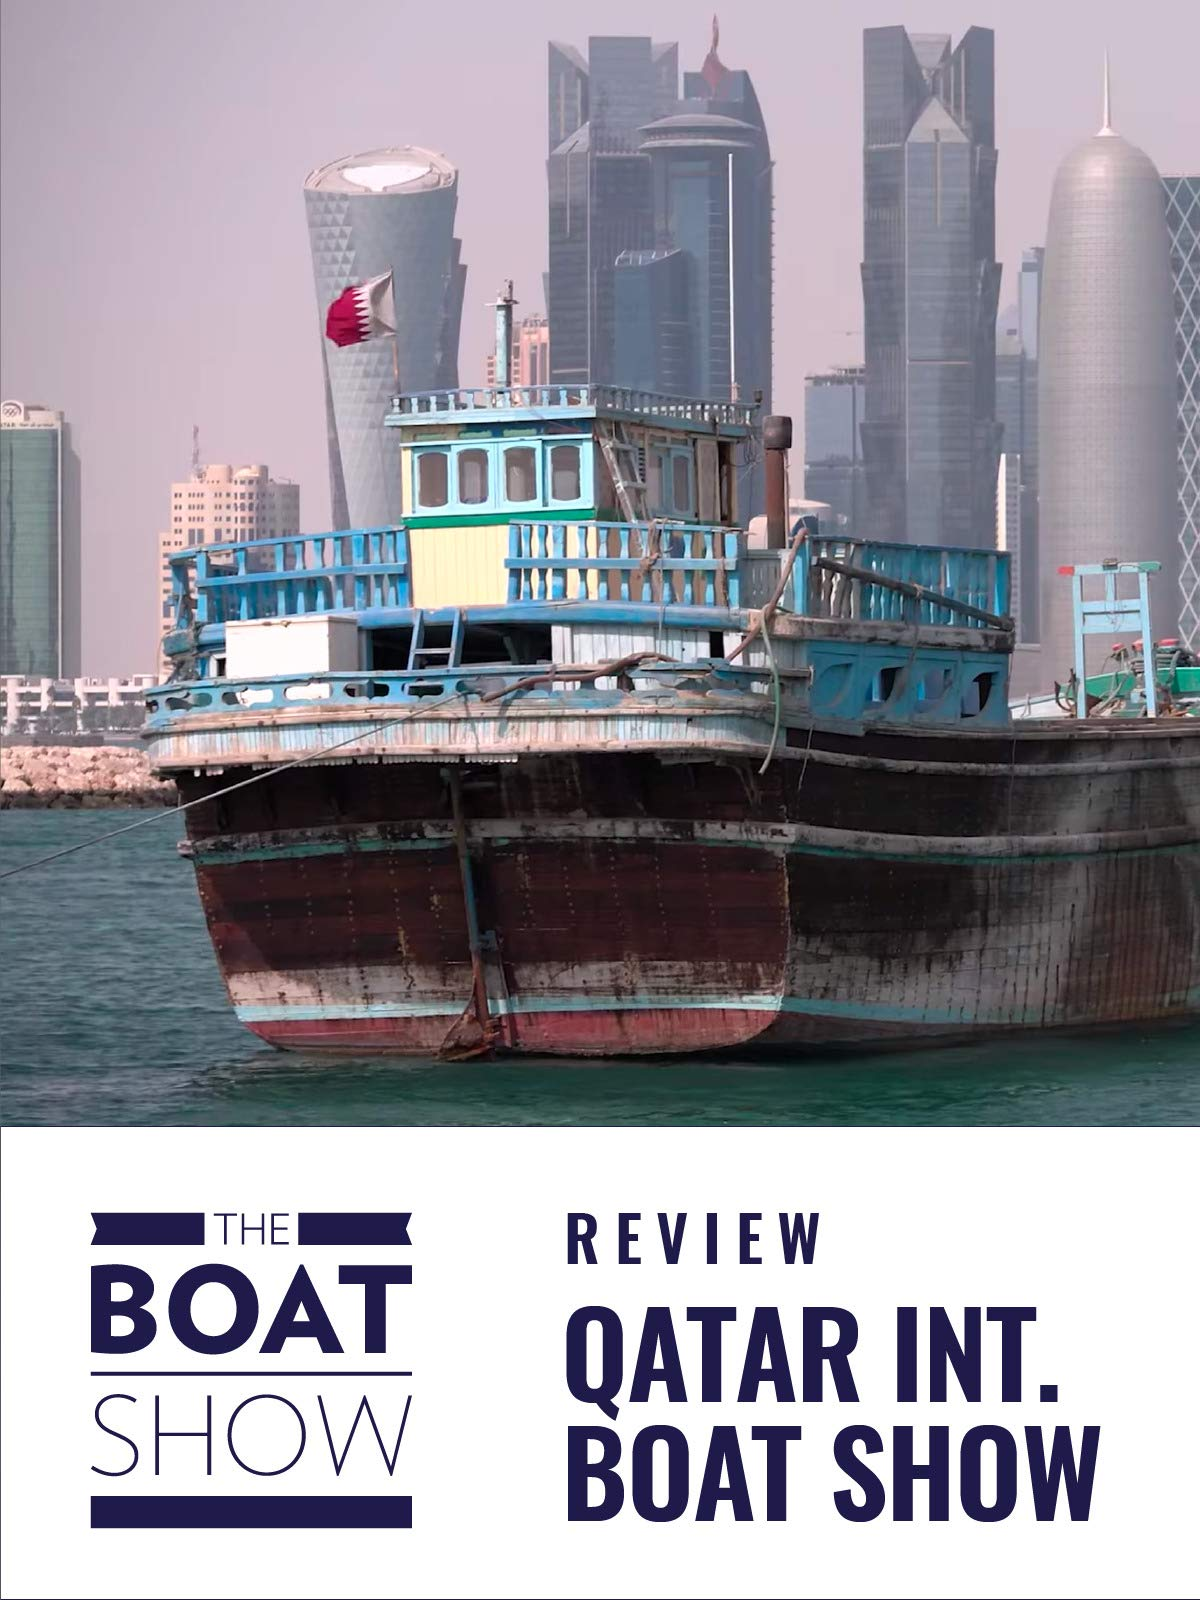 Clip: Qatar International Boat Show - The Boat Show